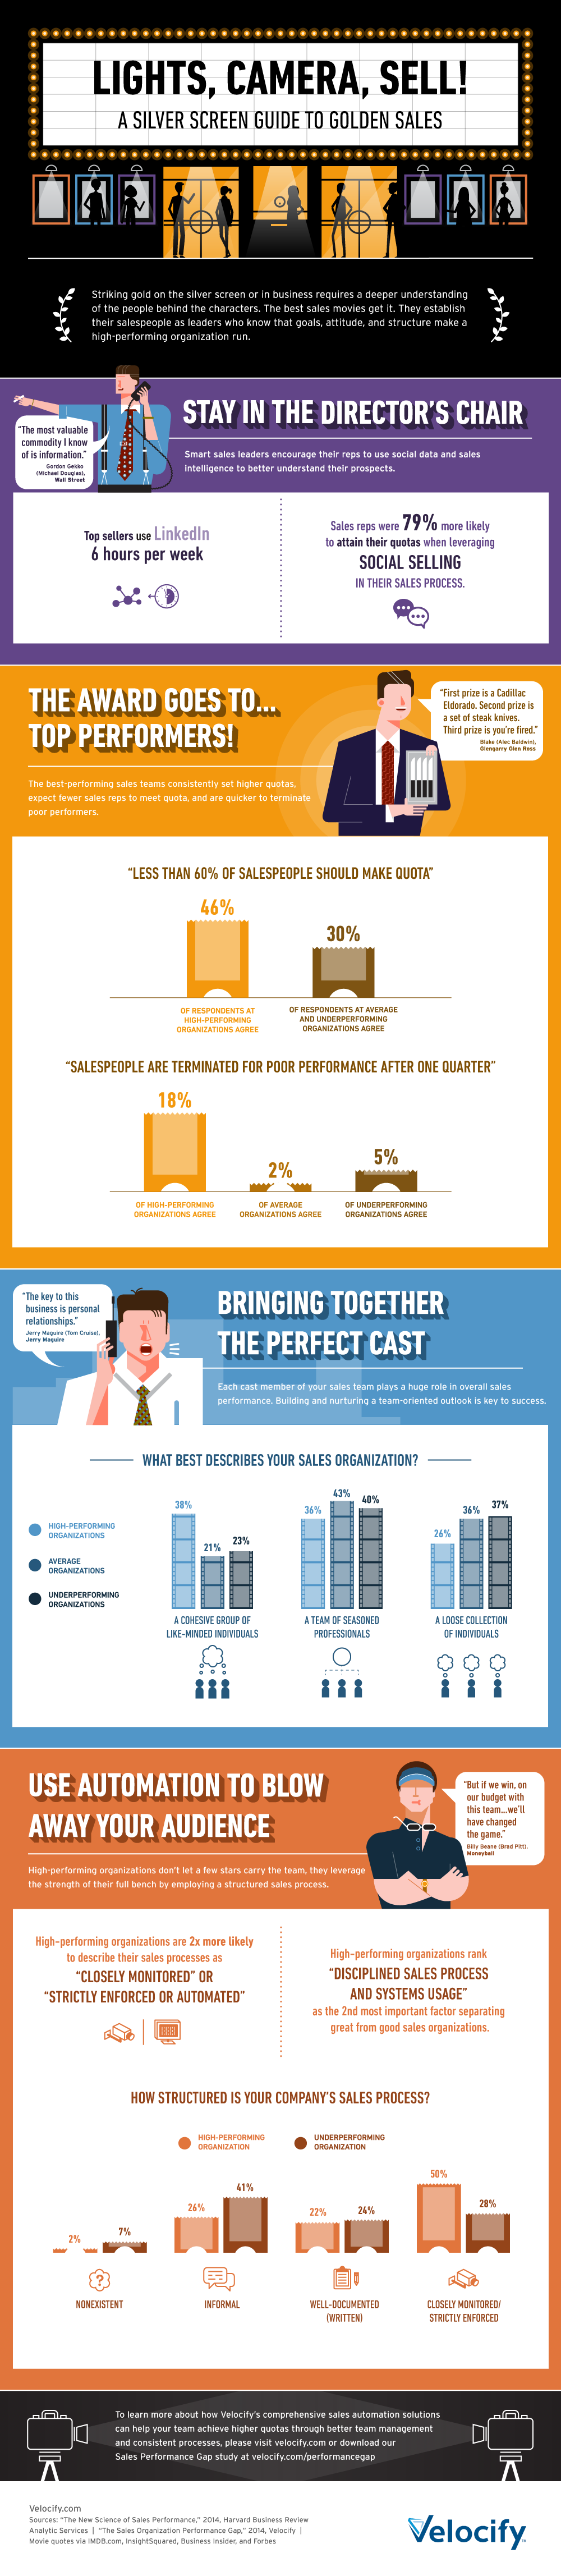 Lights, Camera, Sell! A Silver Screen Guide to Golden Sales #infographic